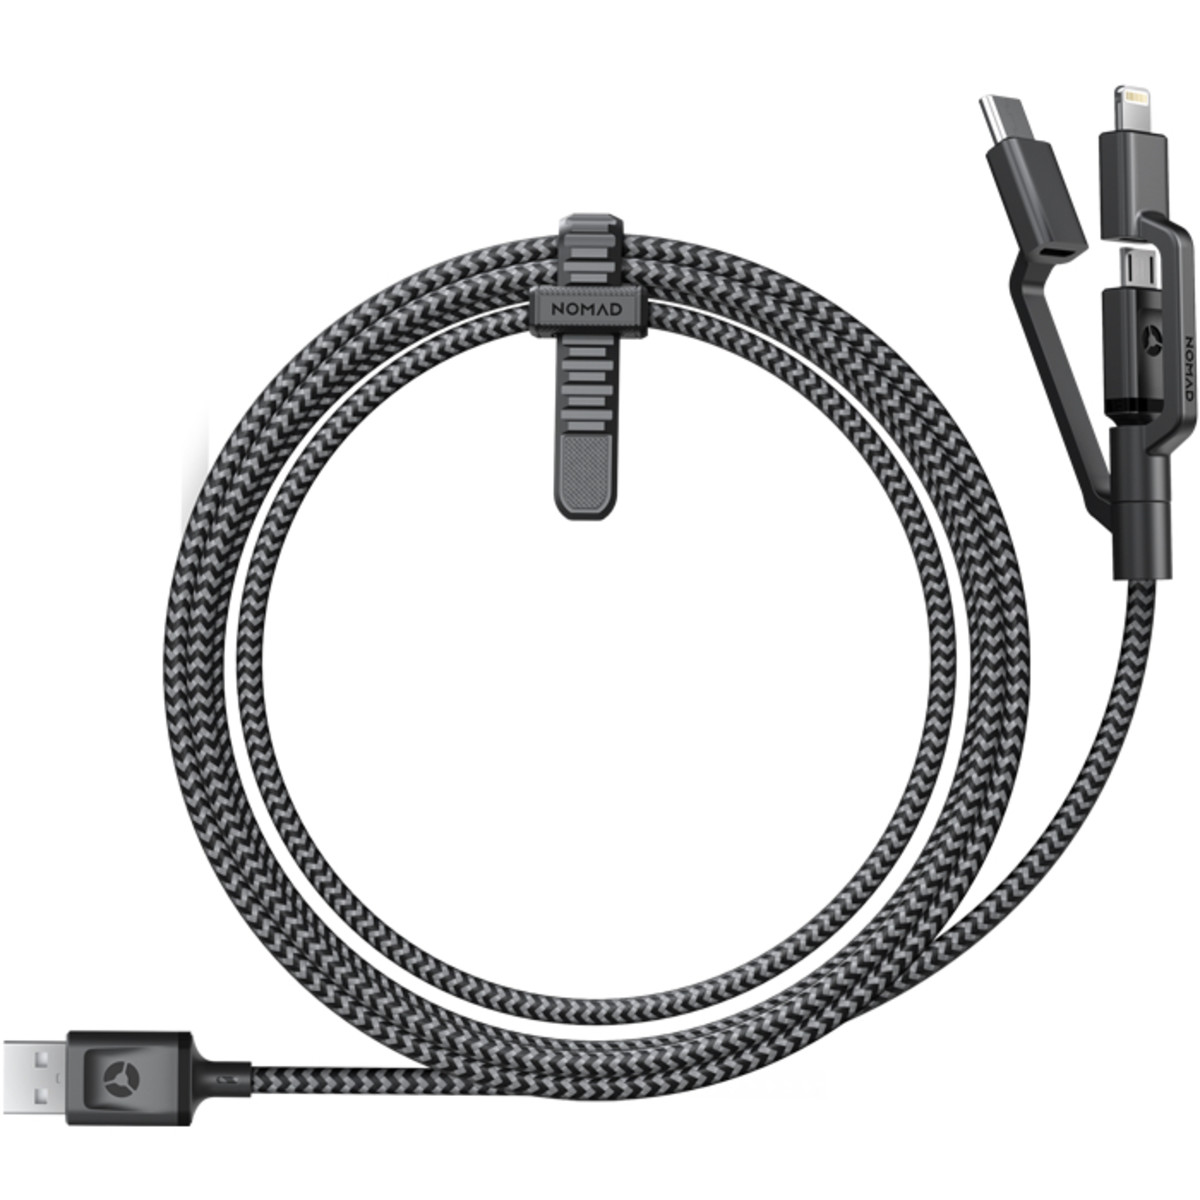 nomad u0026 39 s new ultra rugged universal cable is the only one